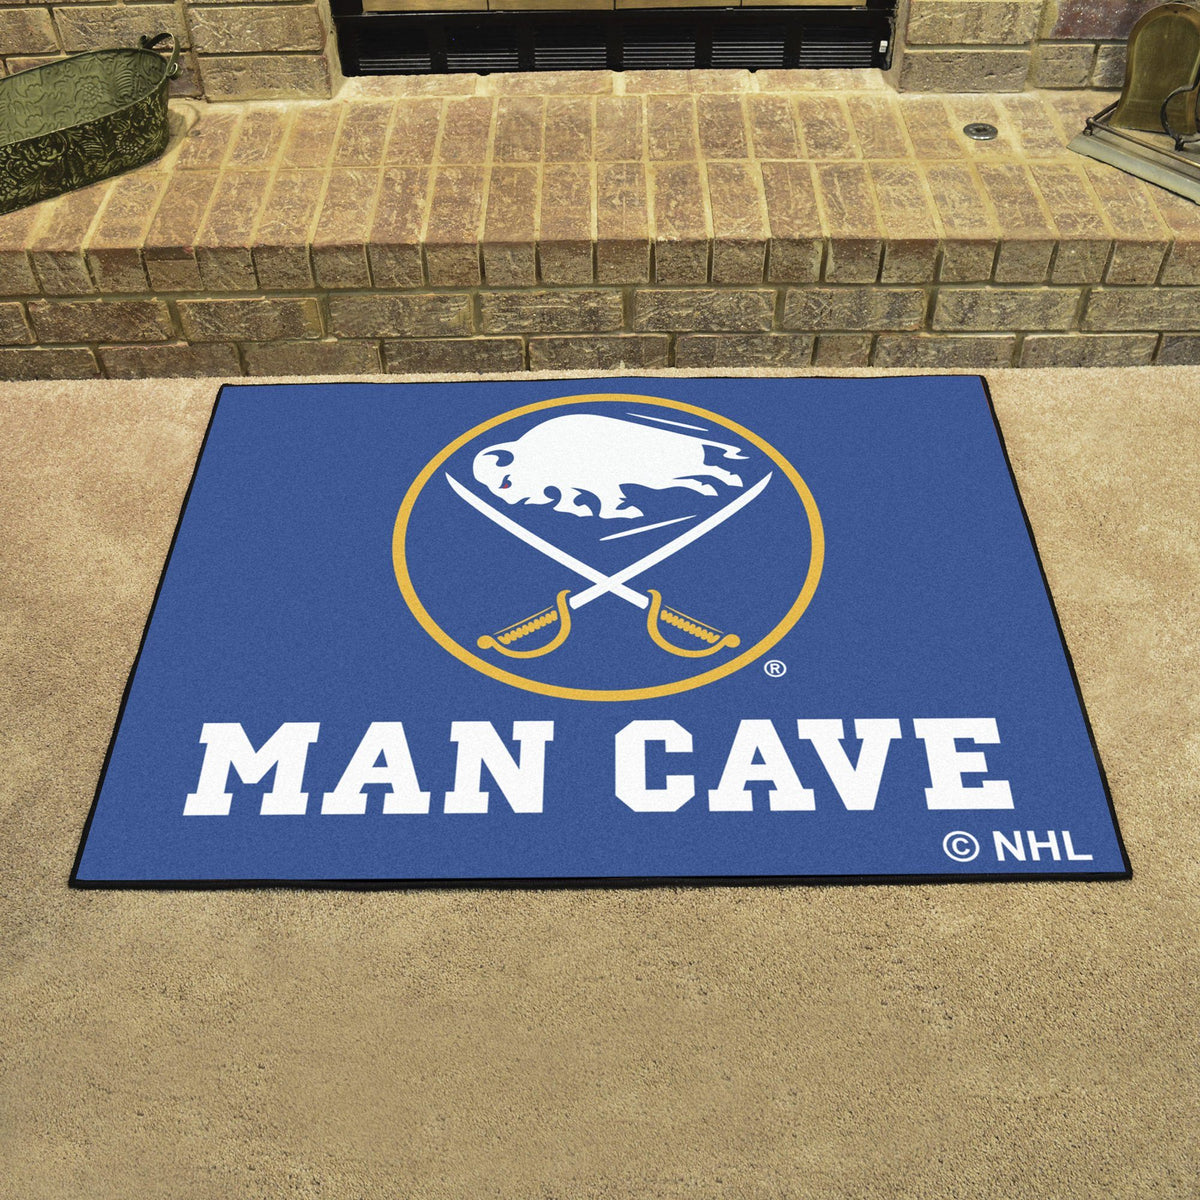 NHL - Man Cave All-Star NHL Mats, Rectangular Mats, Man Cave All-Star Mat, NHL, Home Fan Mats Buffalo Sabres